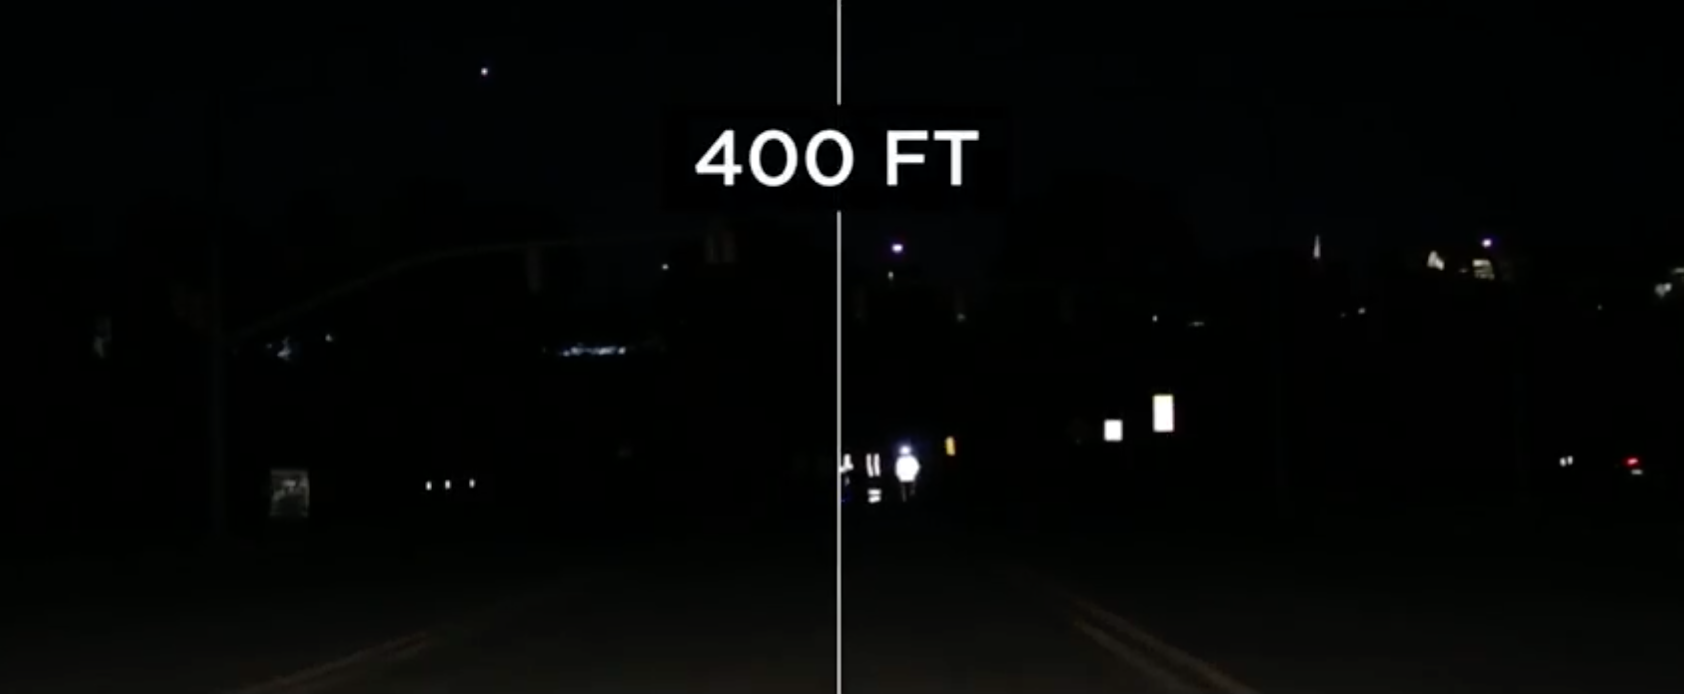 Split screen shows that runners with reflective gear on are visible to drivers at 400 feet whereas runners without reflective gear cannot be seen at all.